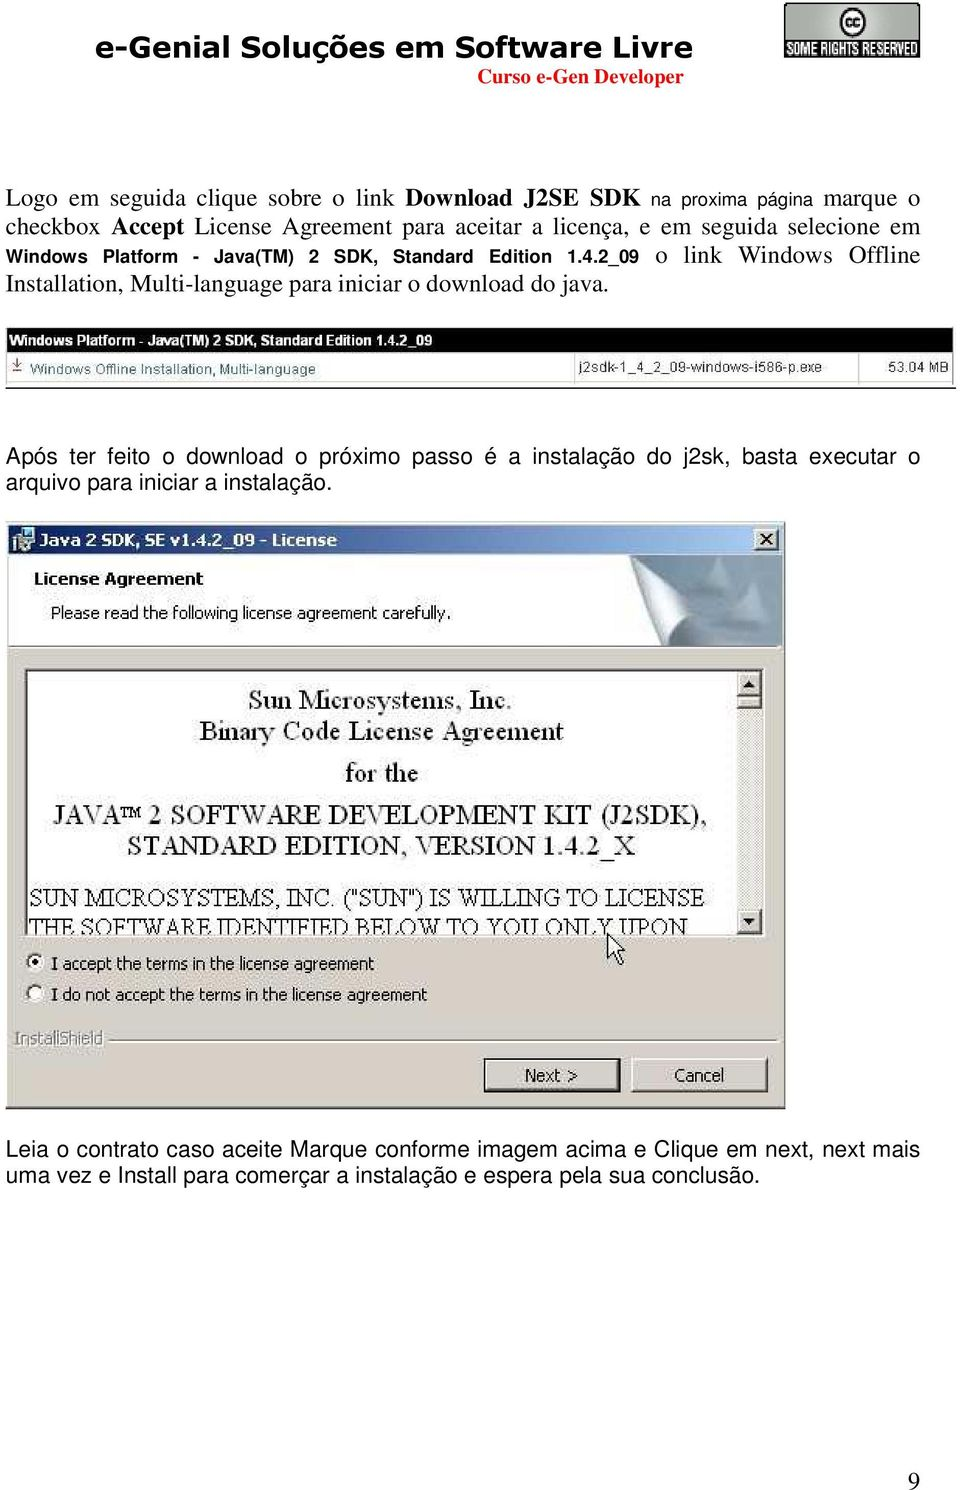 2_09 o link Windows Offline Installation, Multi-language para iniciar o download do java.